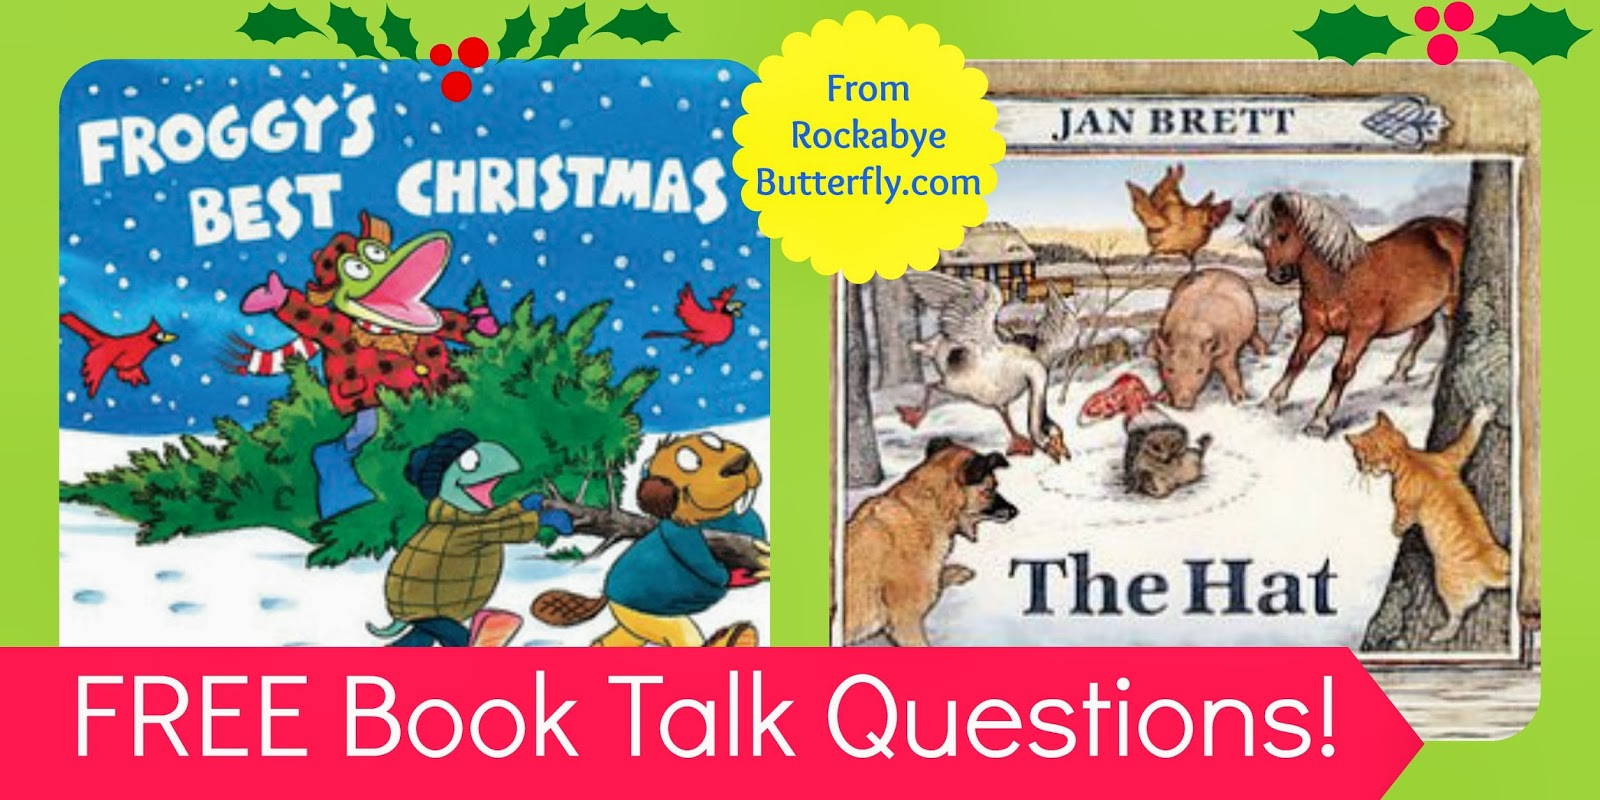 These Free Printables Are 4 Pages Each, With Questions For Each Book